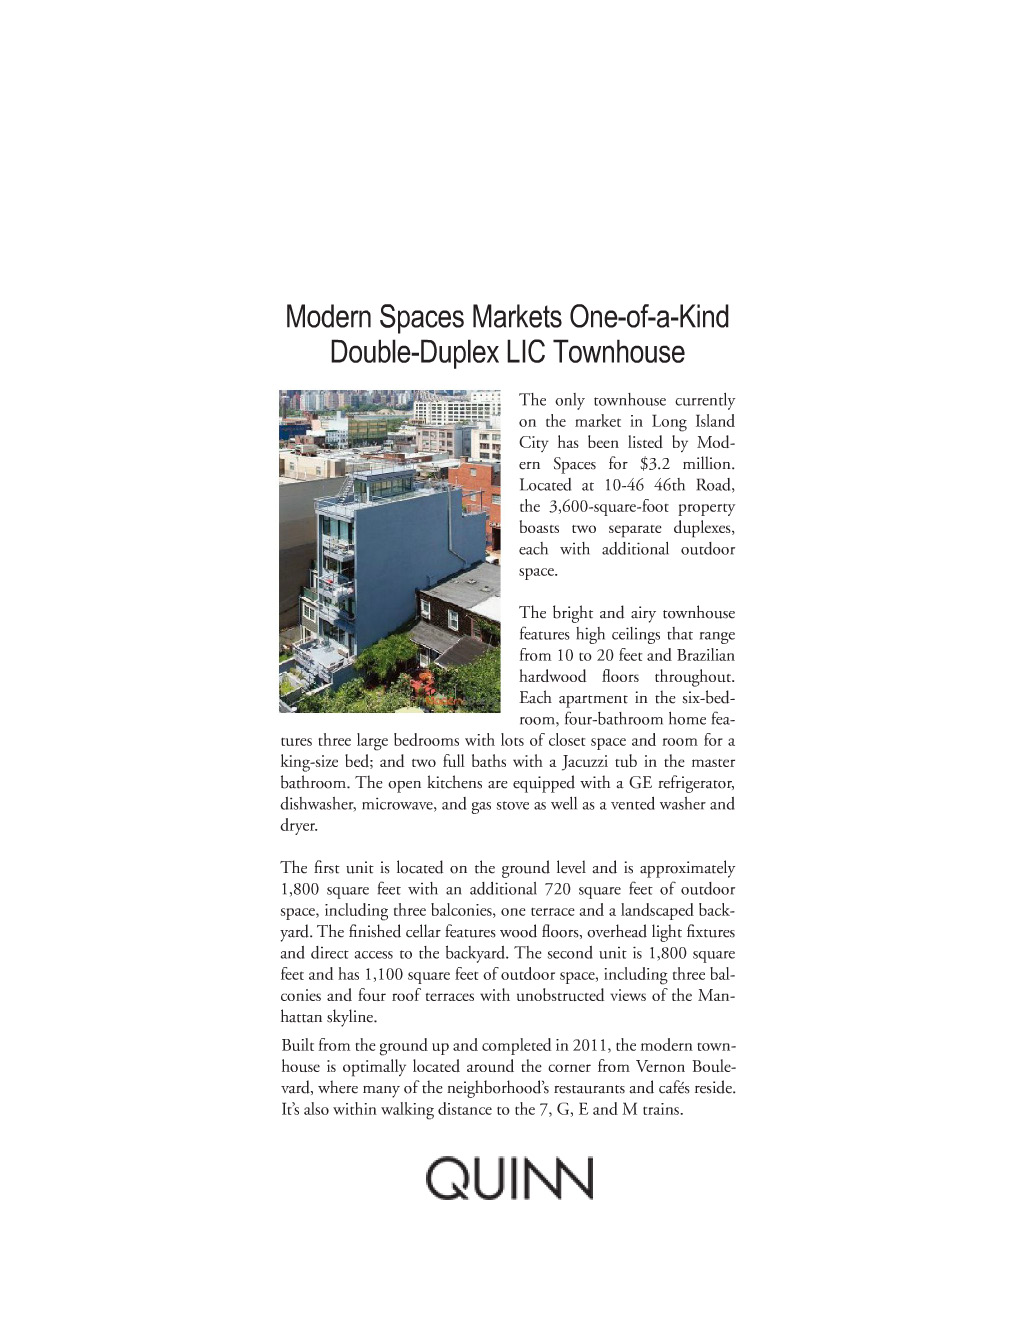 mann-report-modern-spaces-markets-one-of-a-kind-double-duplex-lic-townhouse-9-8-16_page_2